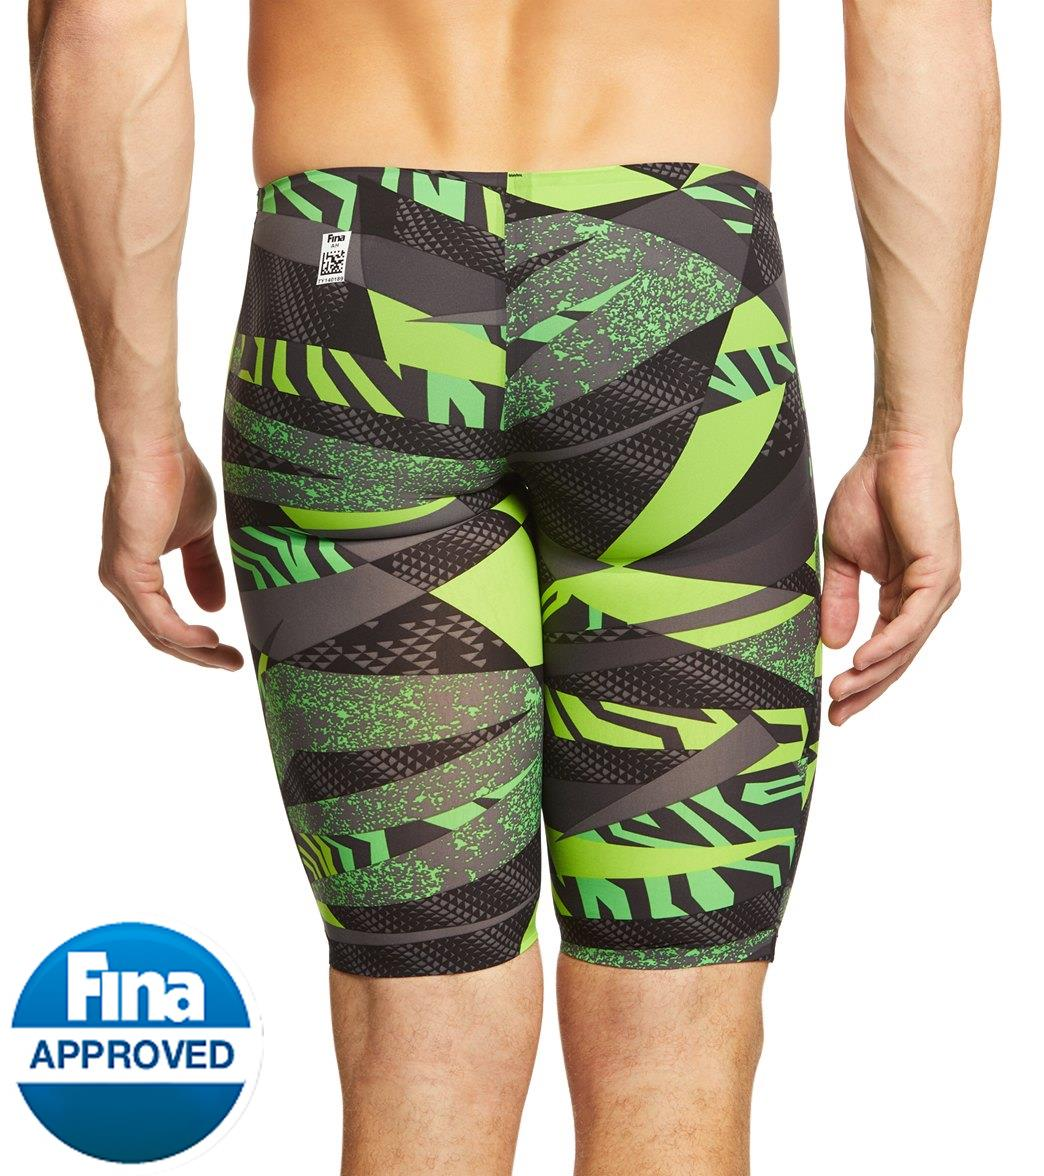 b0fd184d5ff TYR Avictor Prelude Male Short Jammer Tech Suit Swimsuit at ...